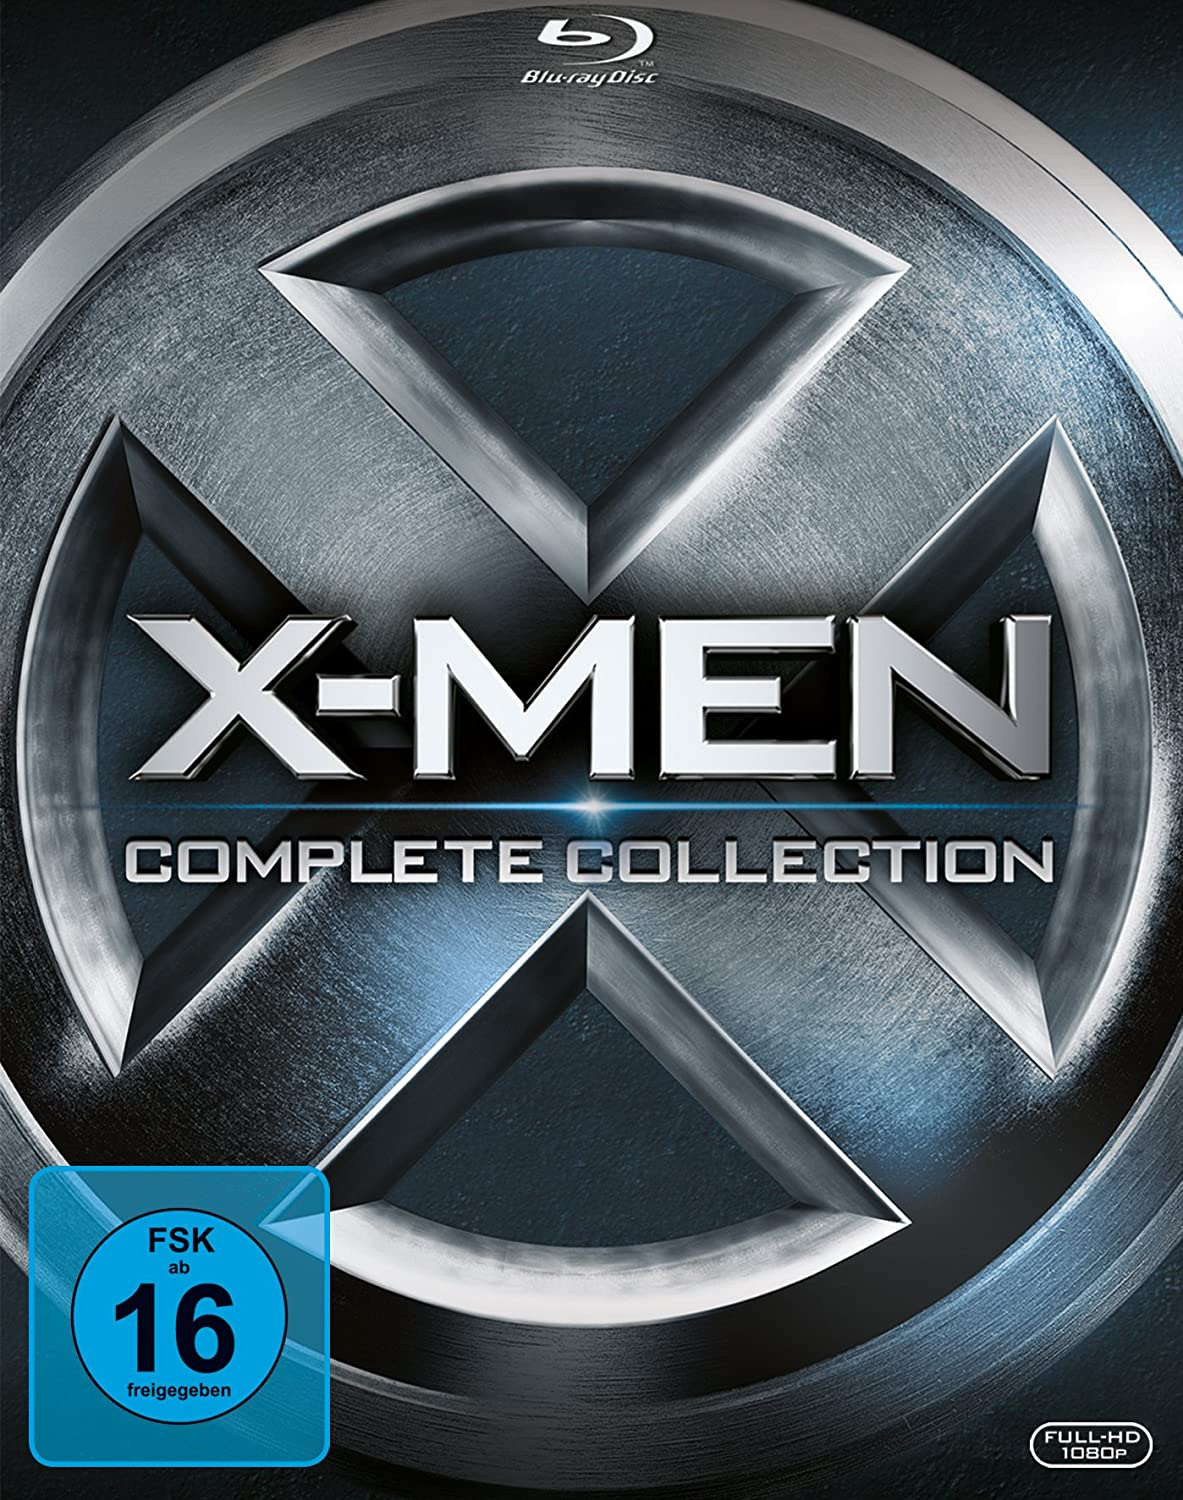 X-Men - Complete Collection [Alemania] [Blu-ray]: Amazon.es: Jackman, Hugh, Jackman, Hugh: Cine y Series TV